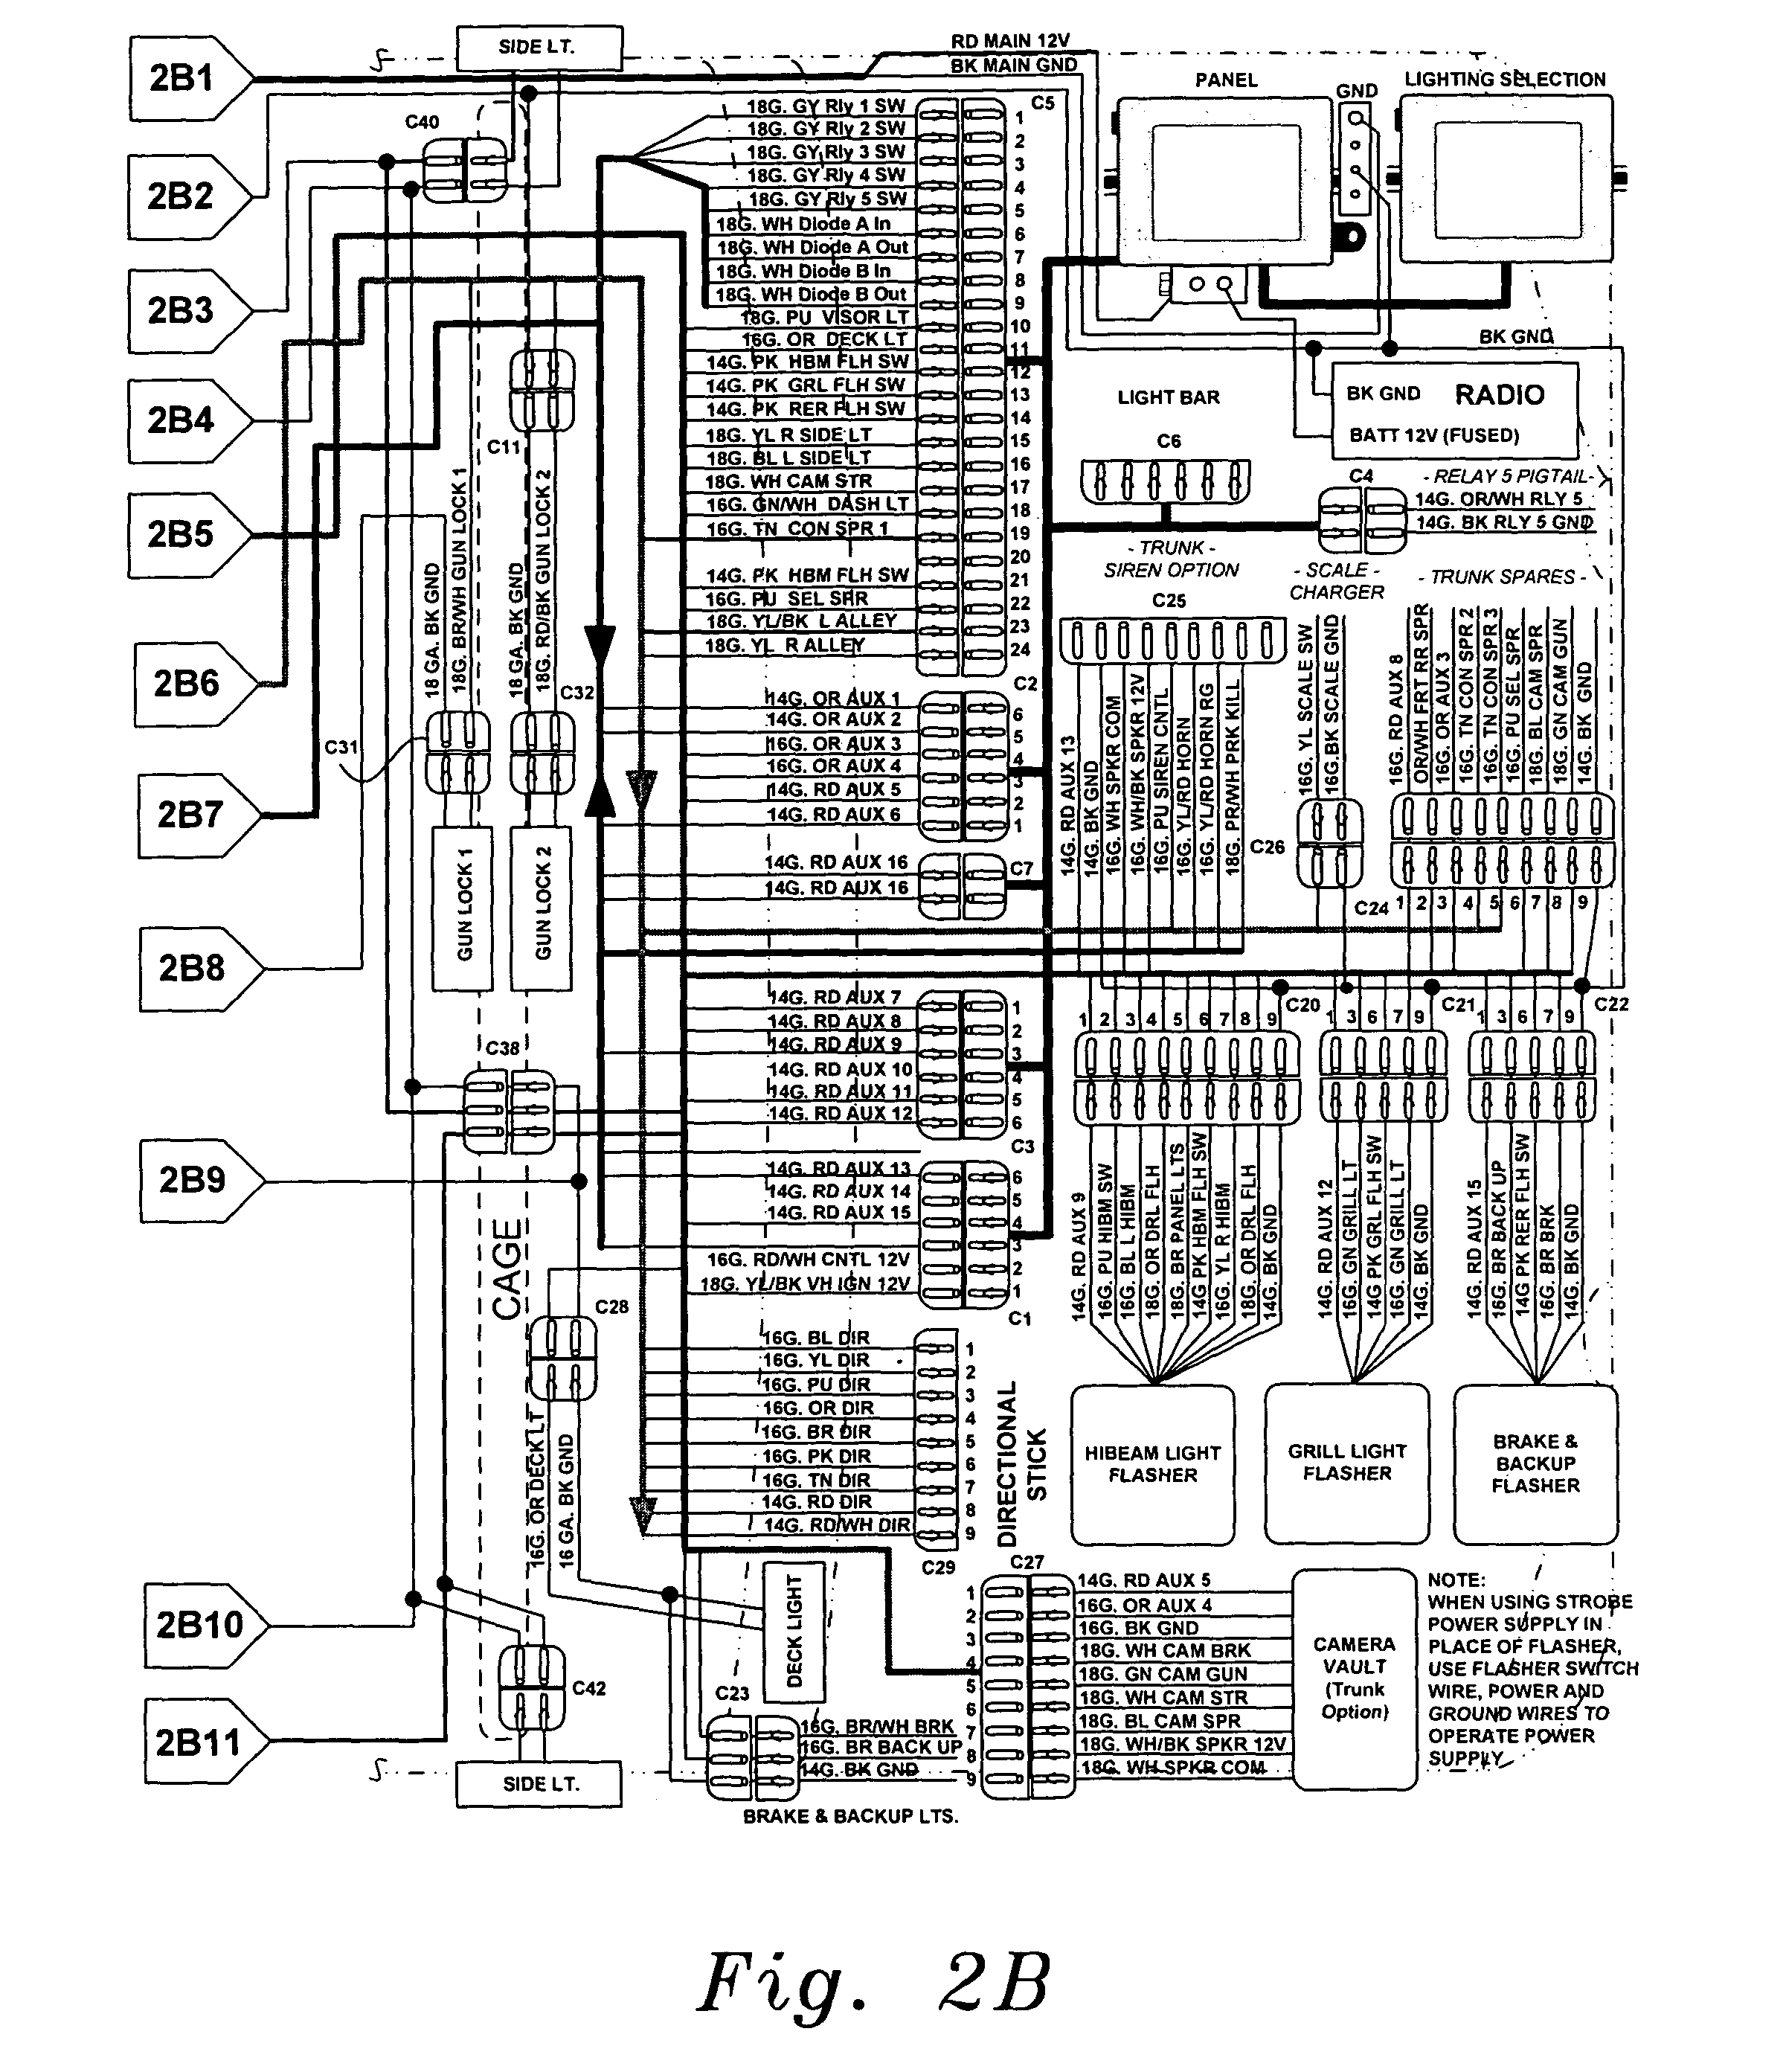 US20040061446A1 20040401 D00003 patent us20040061446 universal fleet electrical system google federal signal ss2000 wiring diagram at virtualis.co